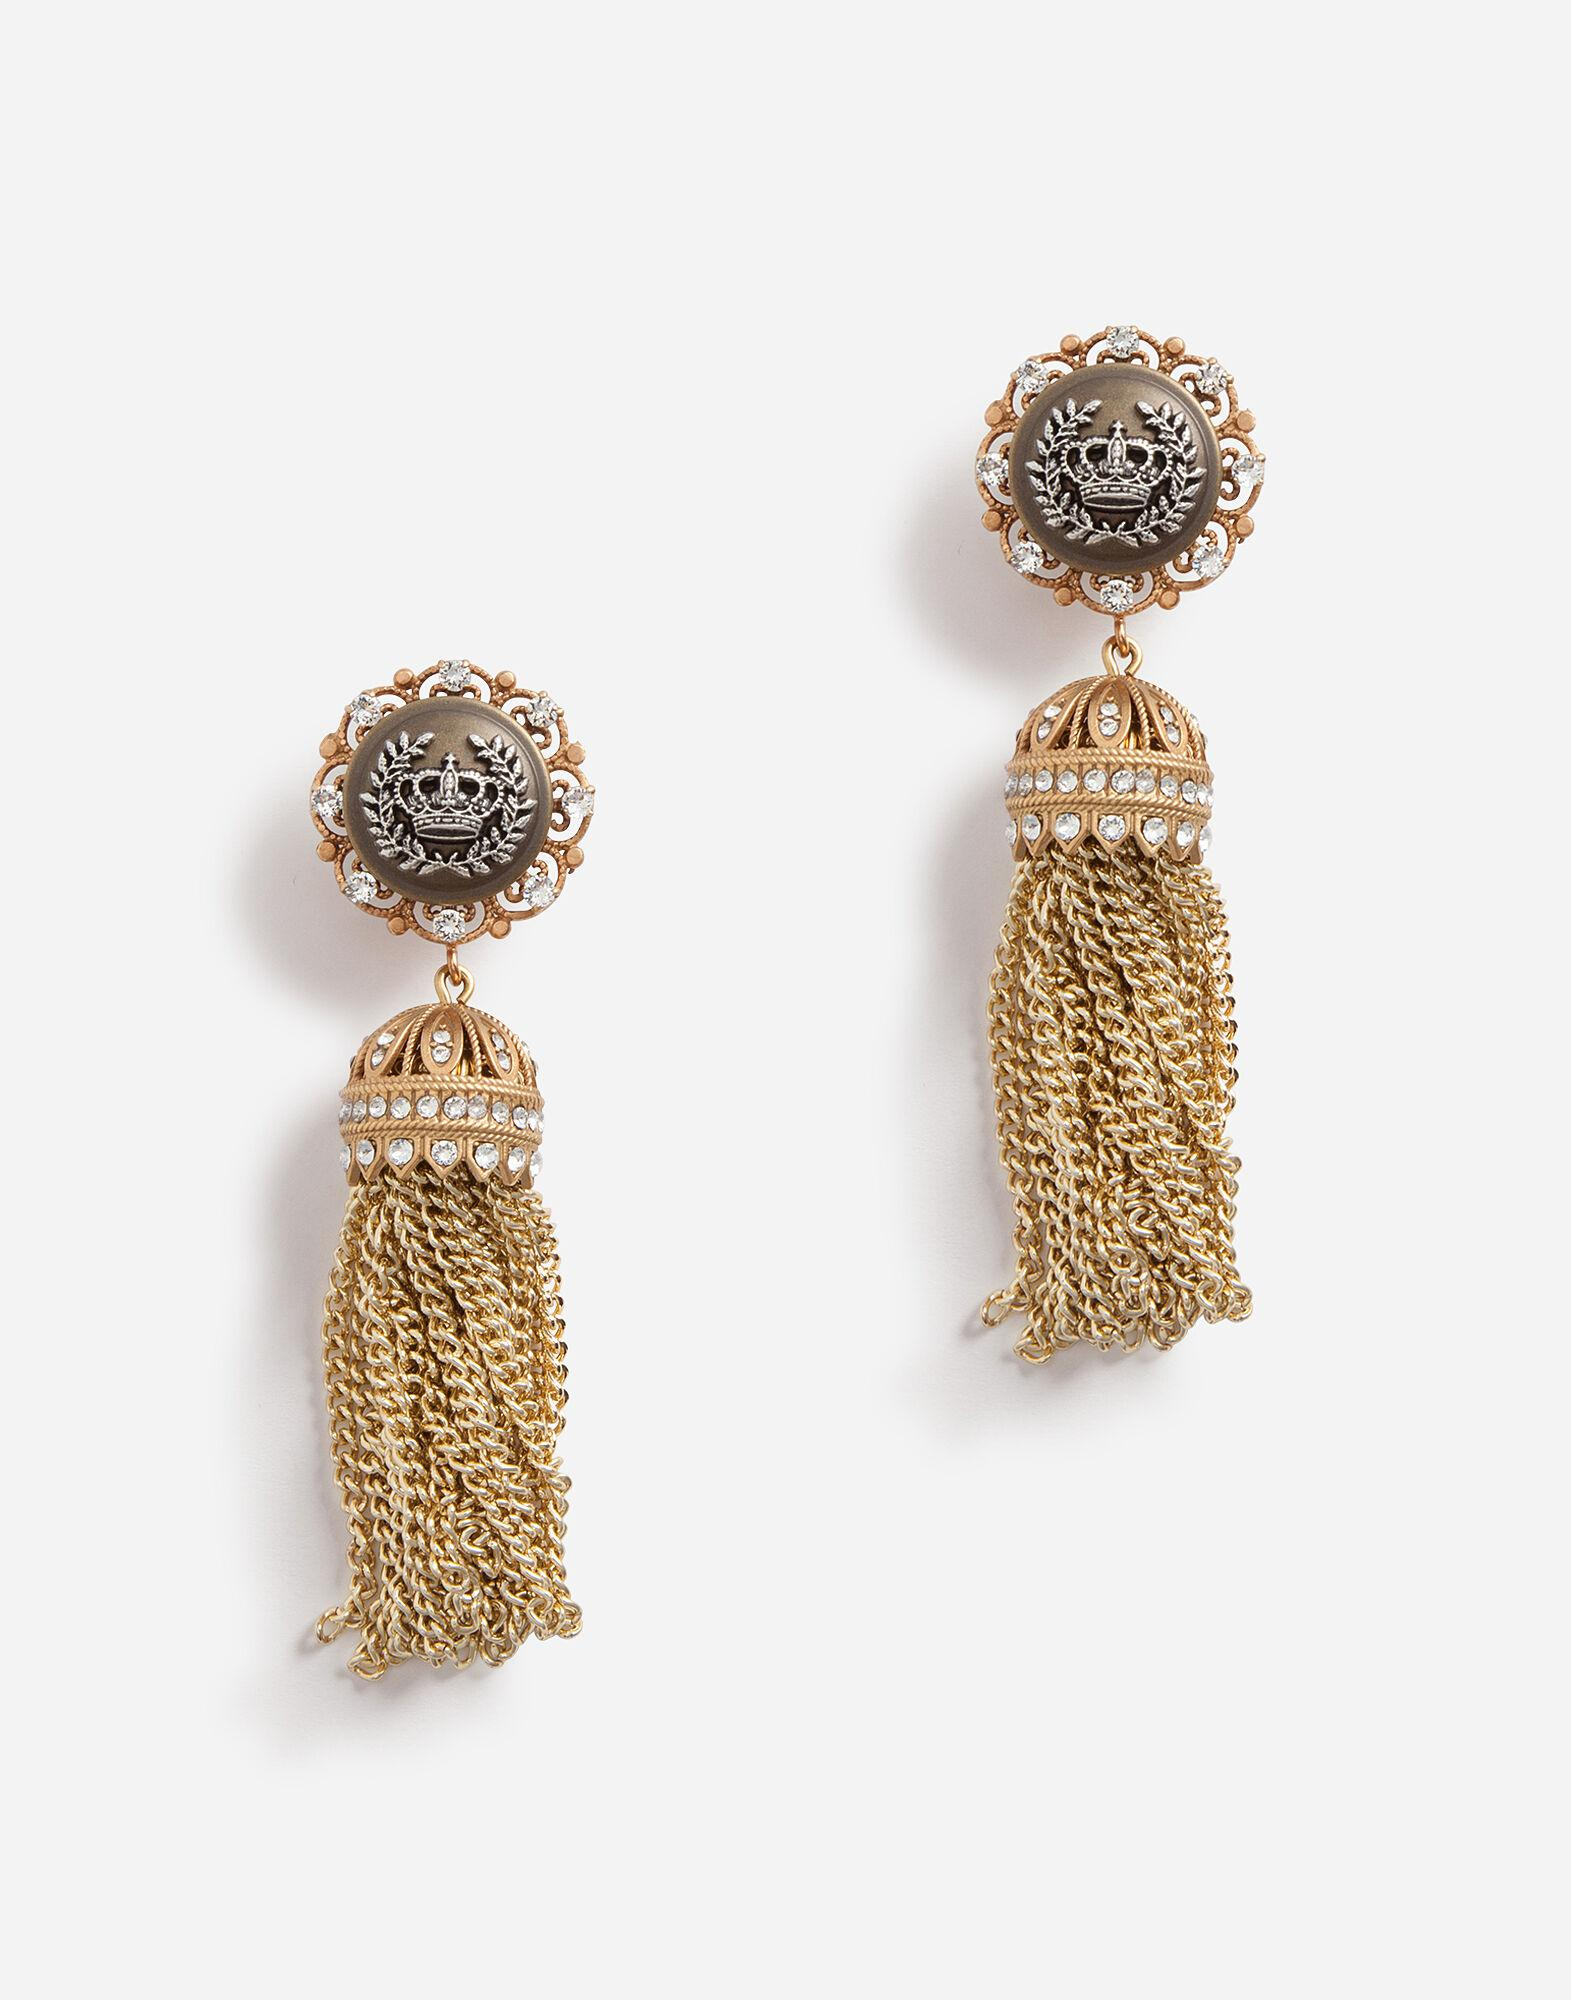 Clip-on drop earrings with rhinestone accents and the heraldic logo